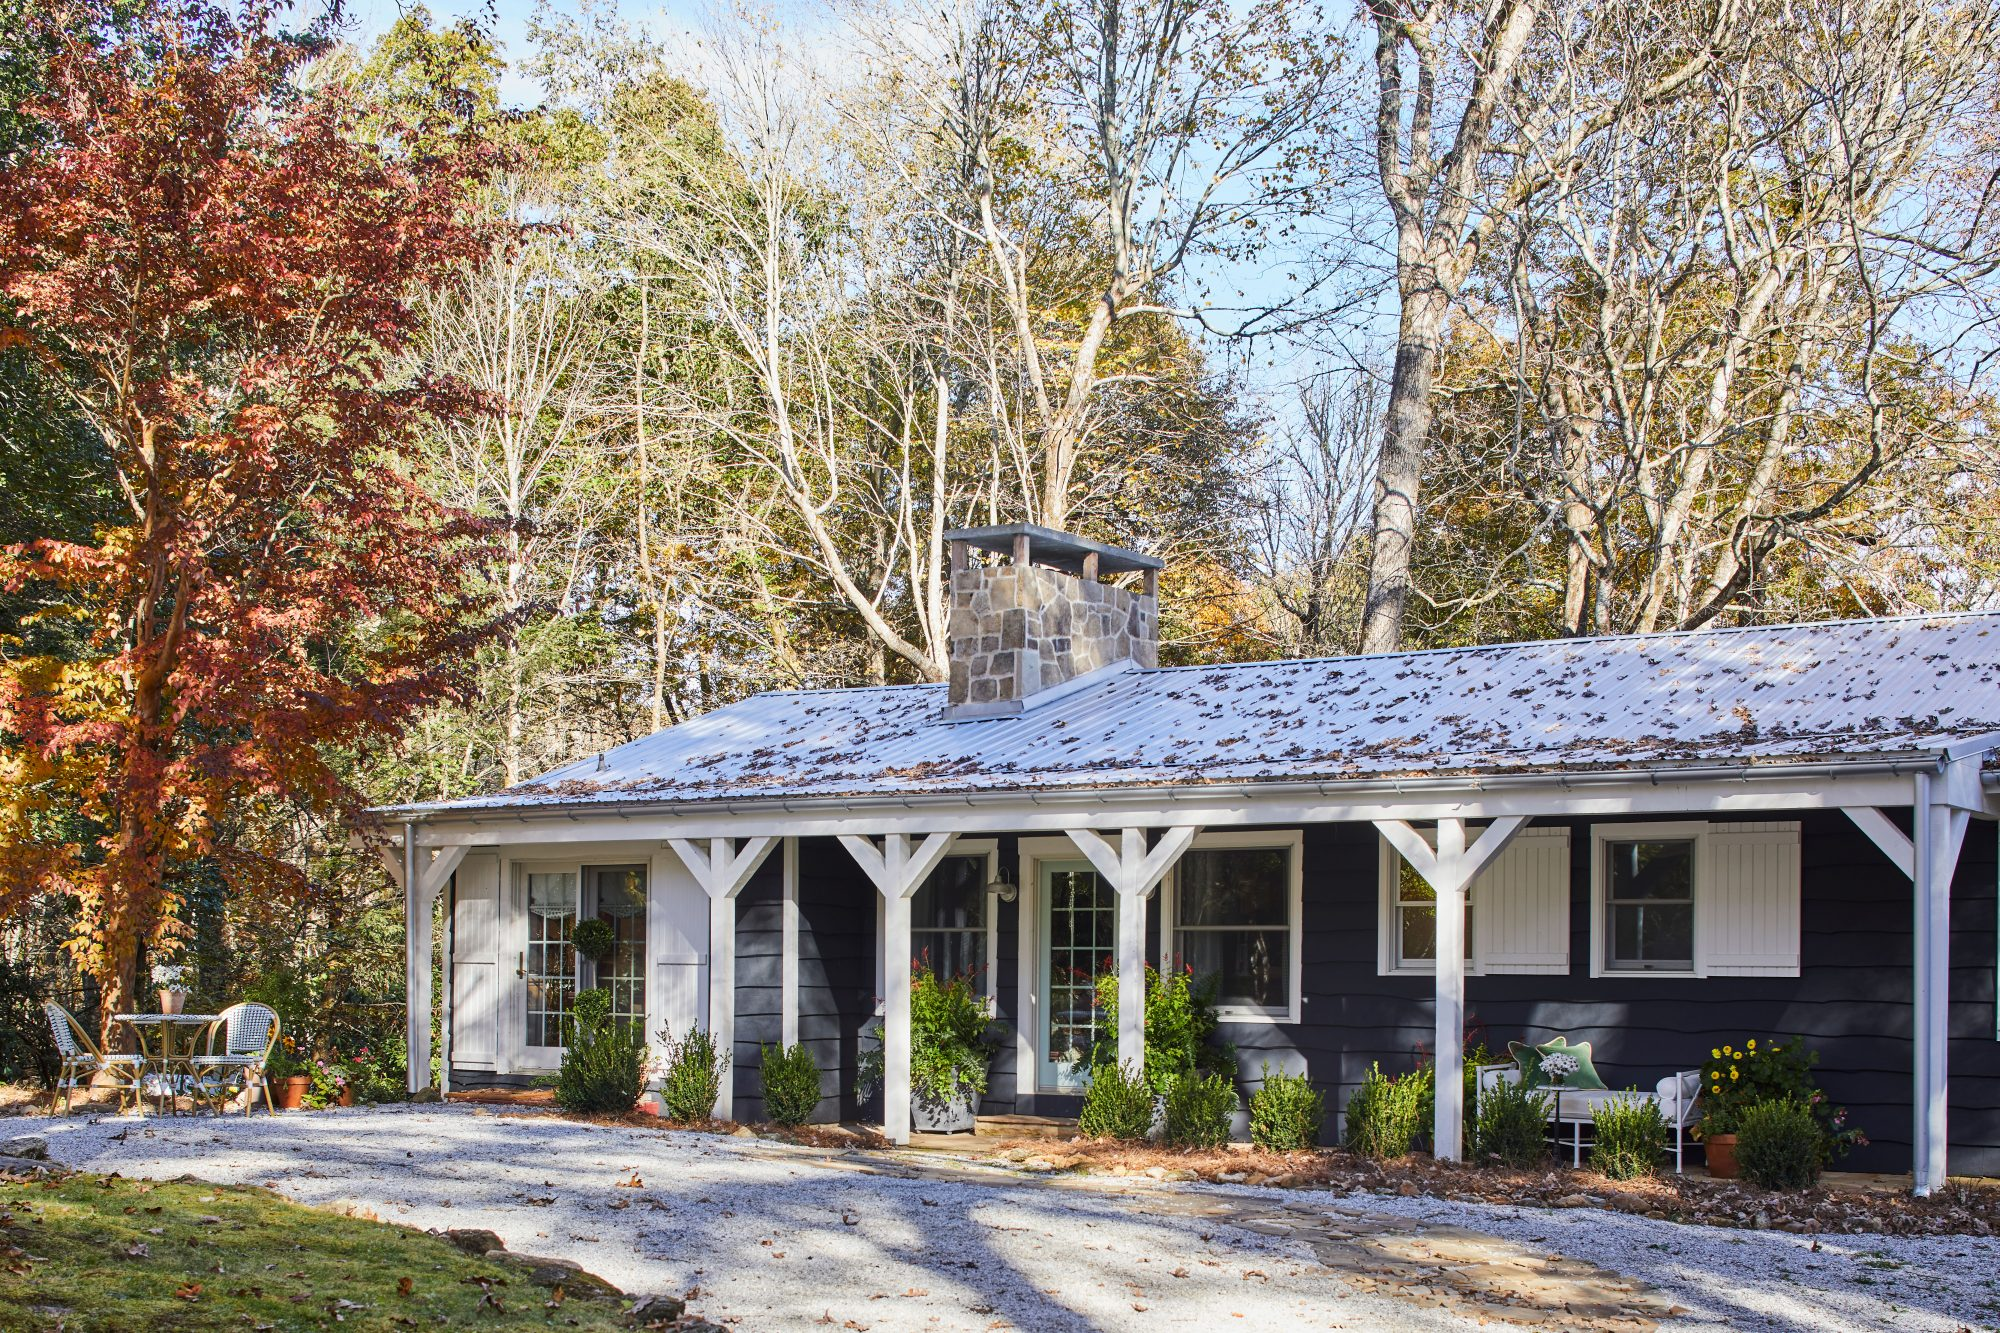 Dark Mountain Cottage with Metal Roof